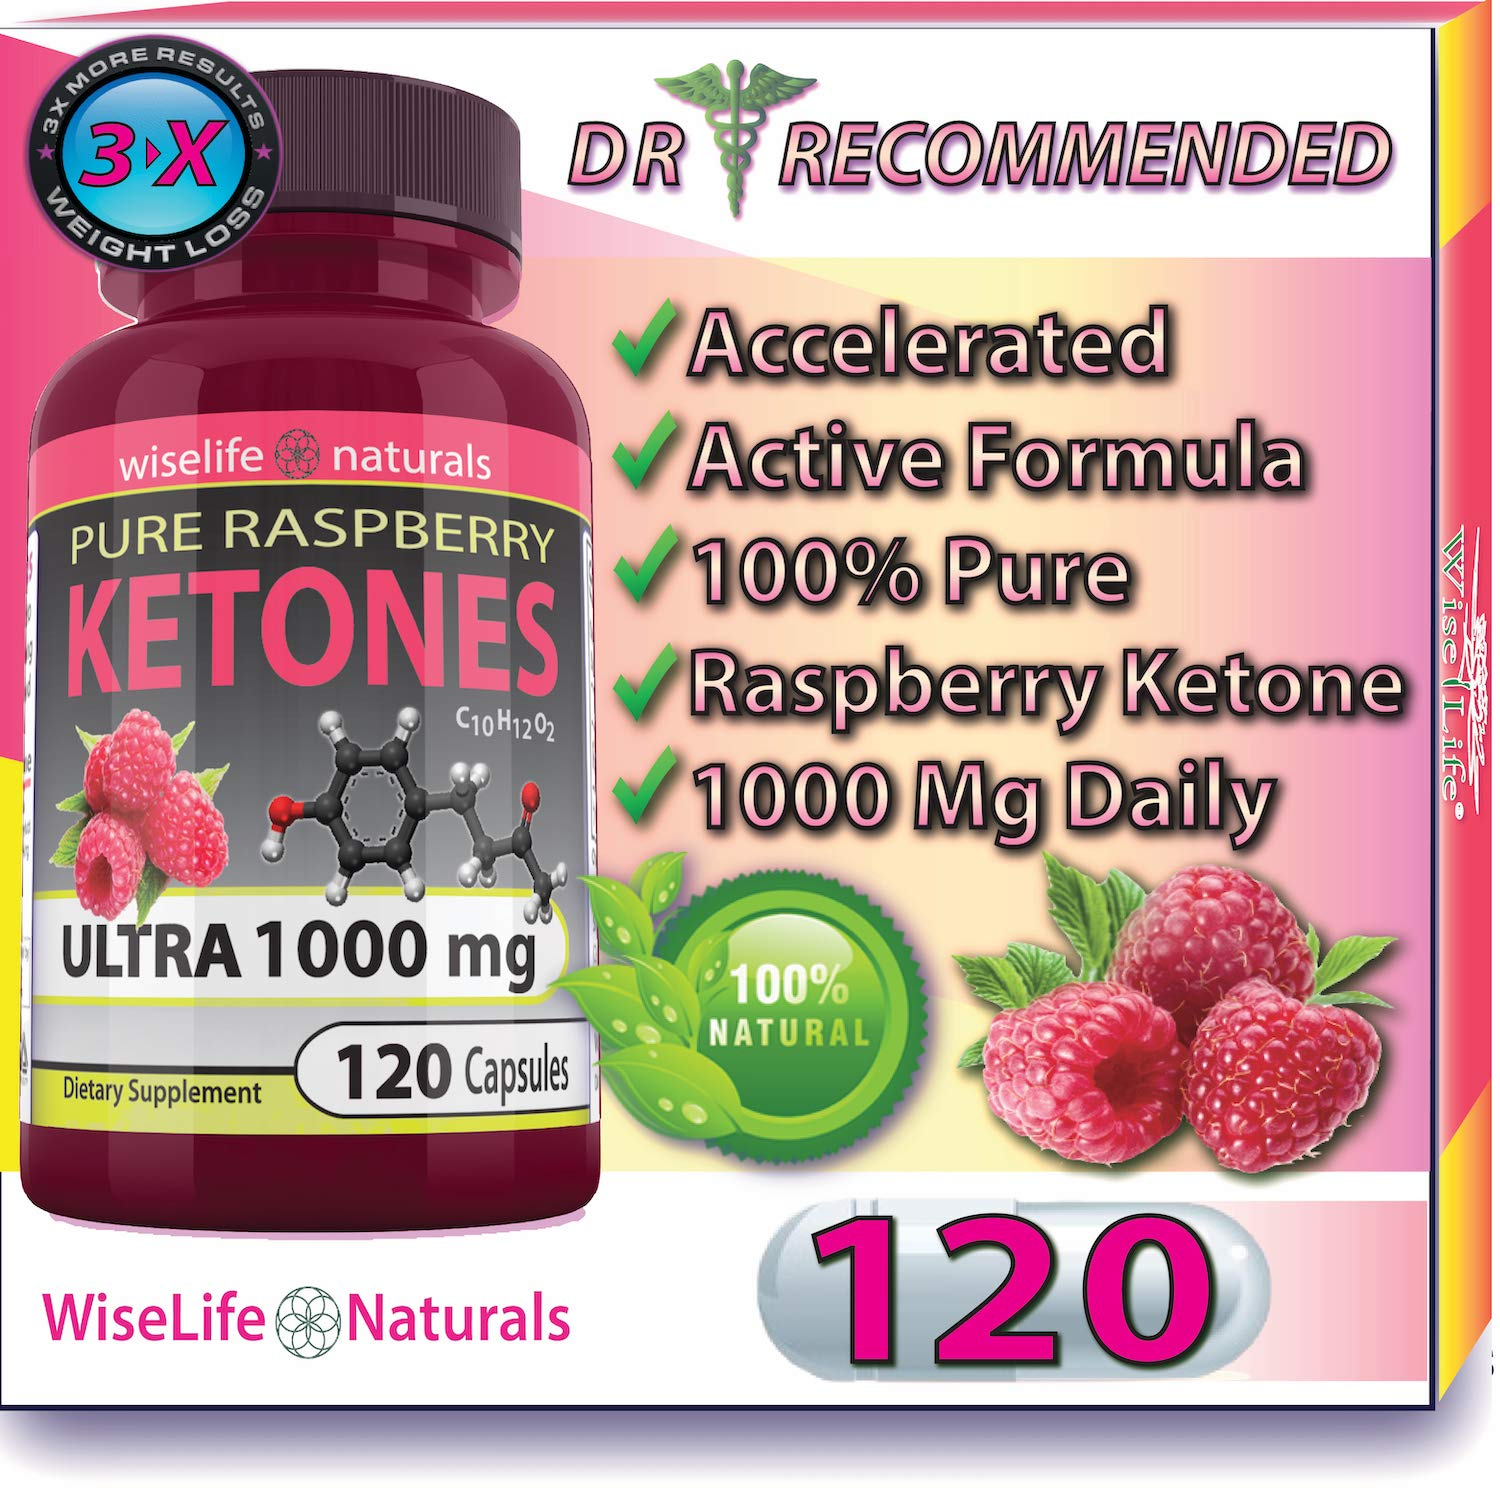 Best Fast Metabolism Slimming Pill - Pure Raspberry Ketones Fresh 1000mg Plus Max Burn, Lose Fat Quickly Proven Supports Rapid Ketogenic Diet Weight Loss, Works Naturally, Slim at Home No Side Effects